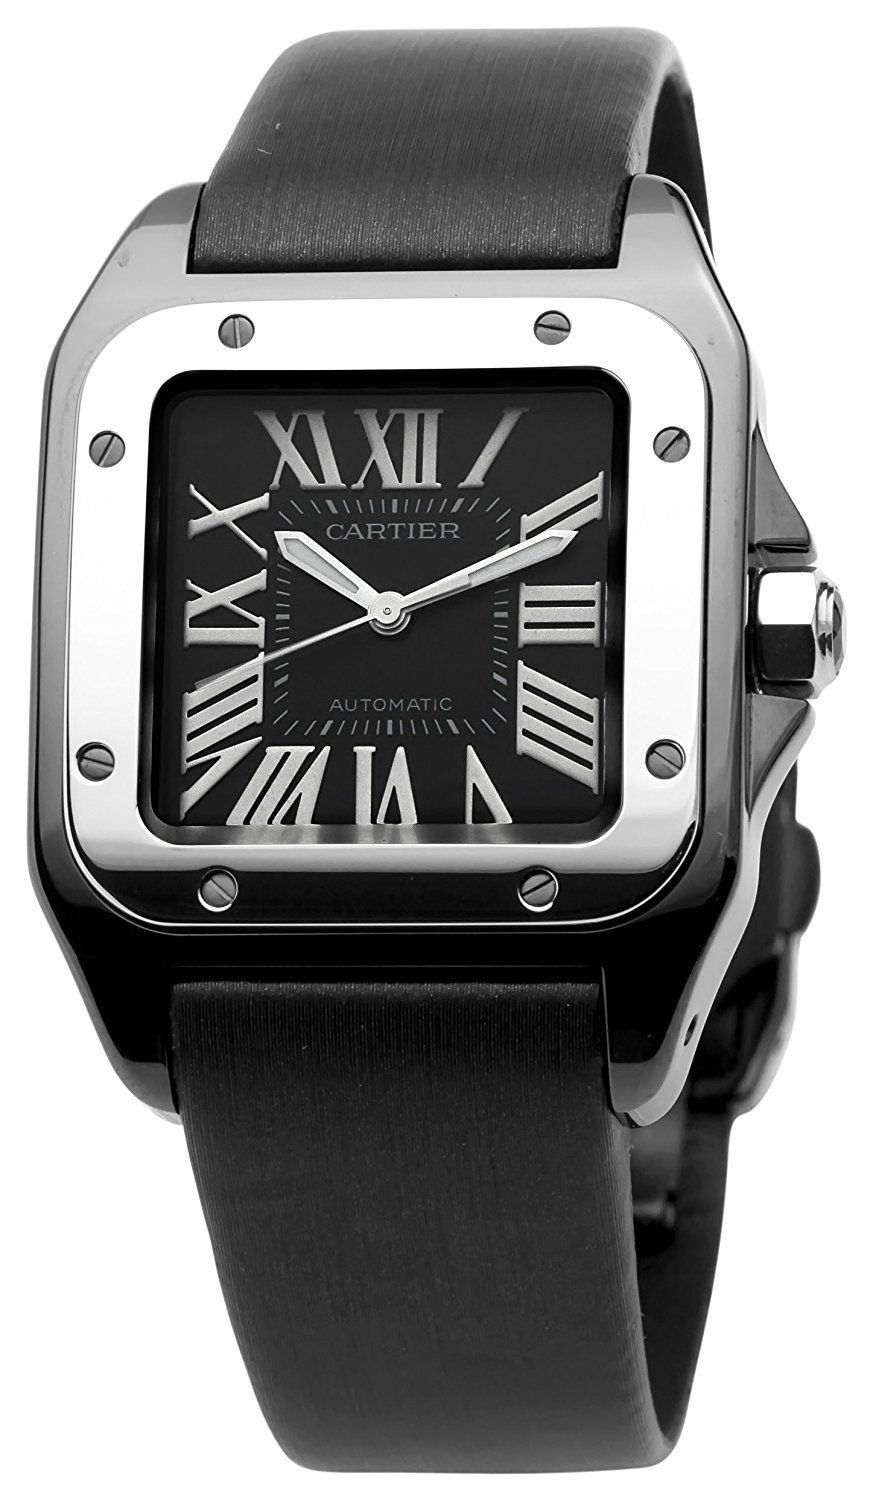 Cartier Men S W2020008 Santos 100 Medium Watch Special Product Just For You See It Now This Is A Cartier Watches Women Cartier Men Luxury Watches For Men